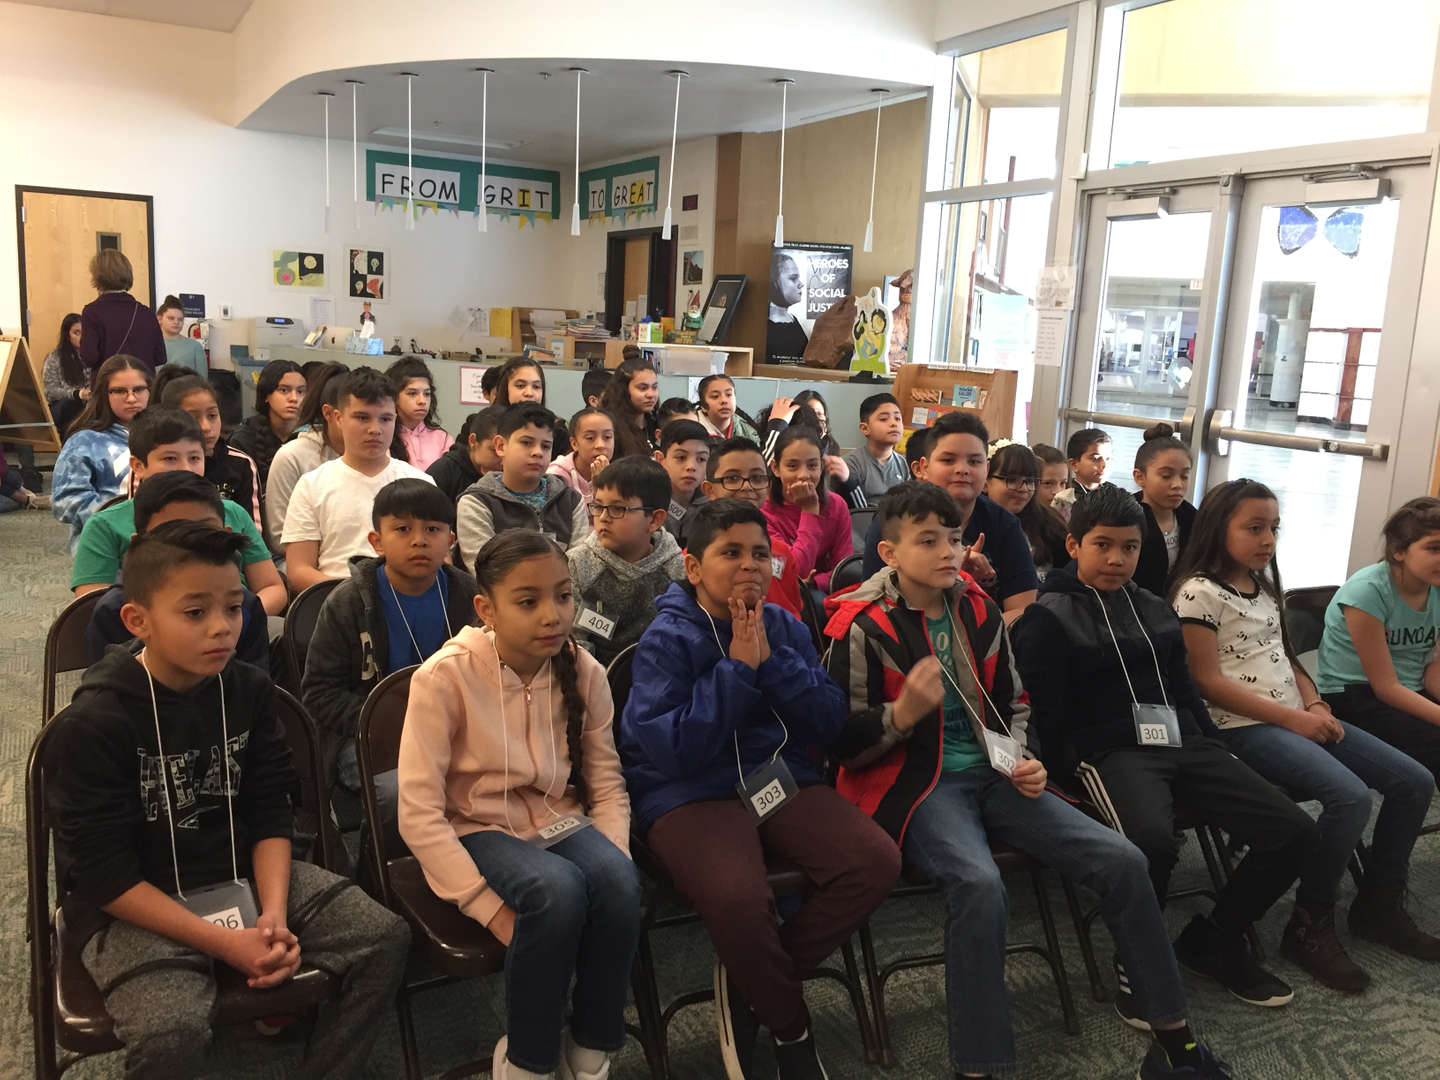 seated students at spelling bee